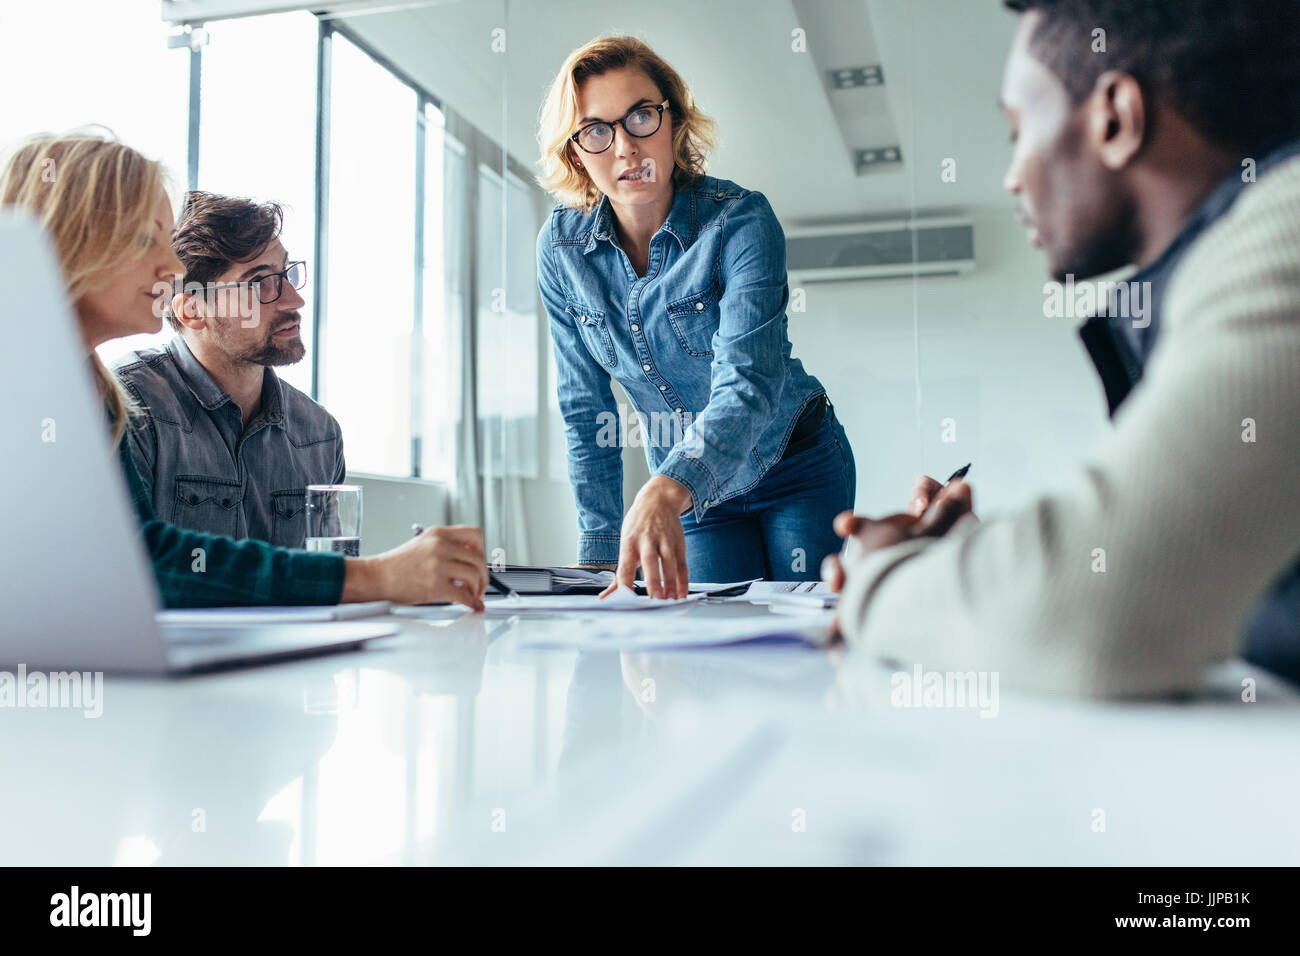 Businesswoman standing and leading business presentation. Female executive putting her ideas during presentation - Stock Image